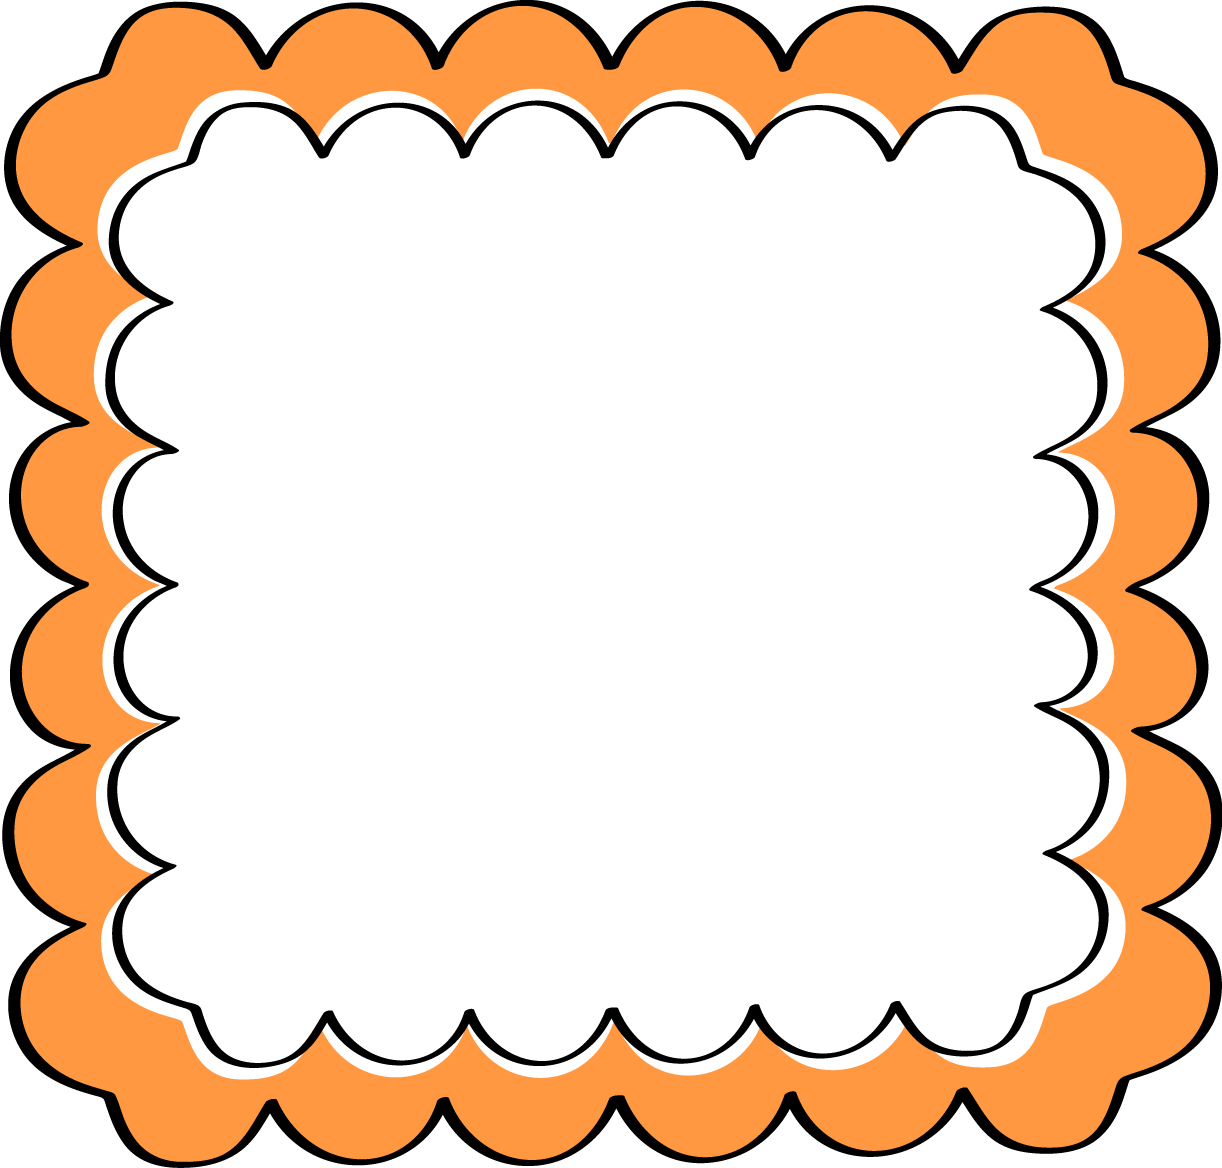 Square clipart curvy. Black and orange border